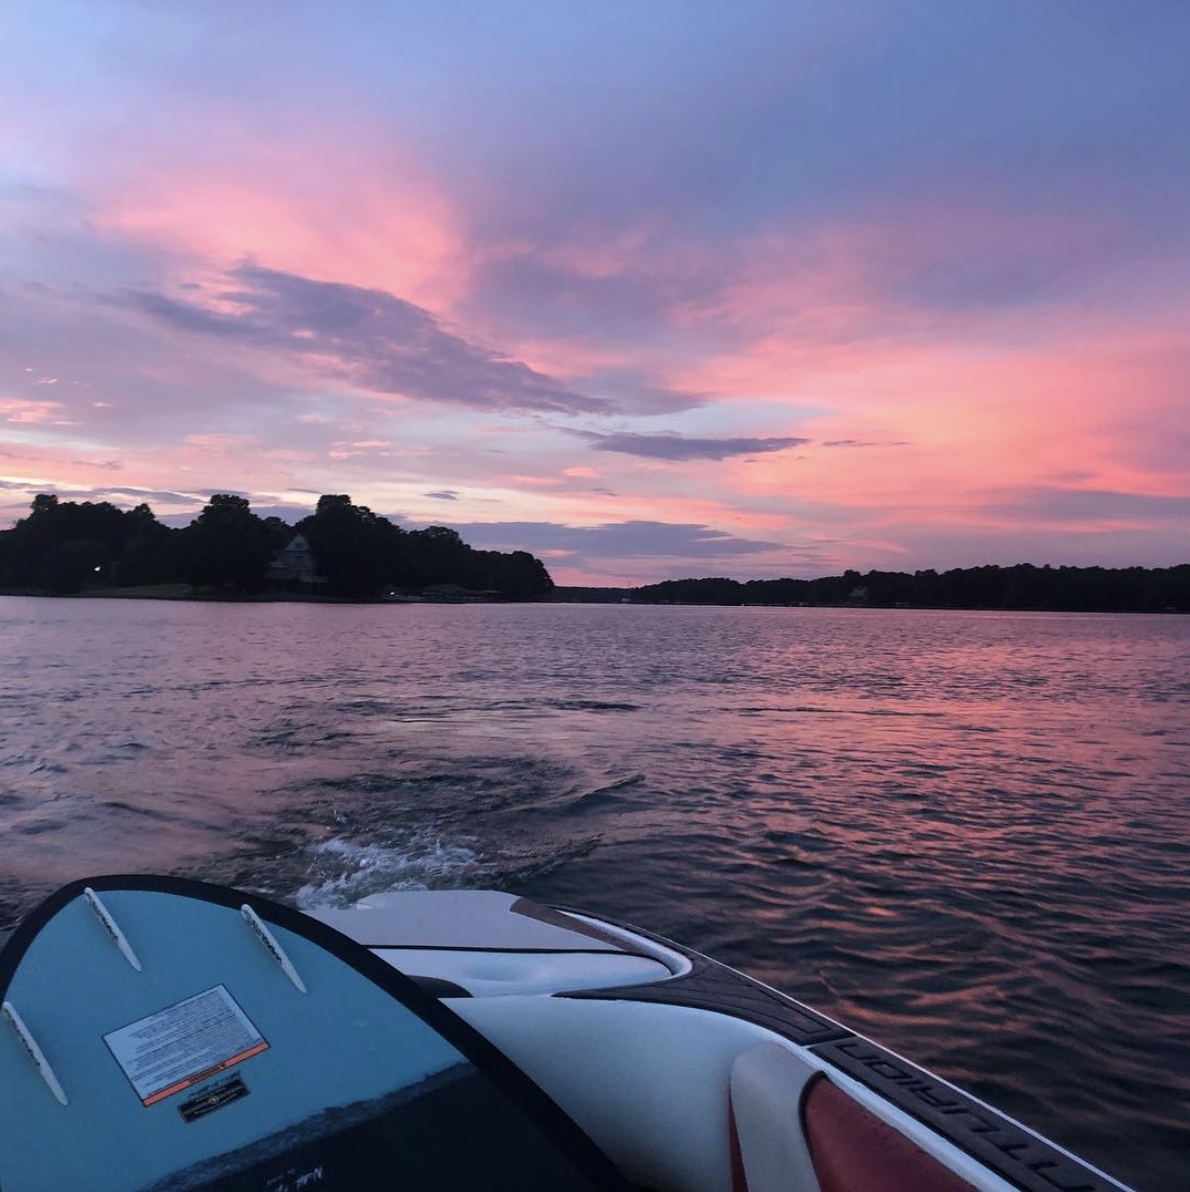 Sunset Surfing on Lake Norman